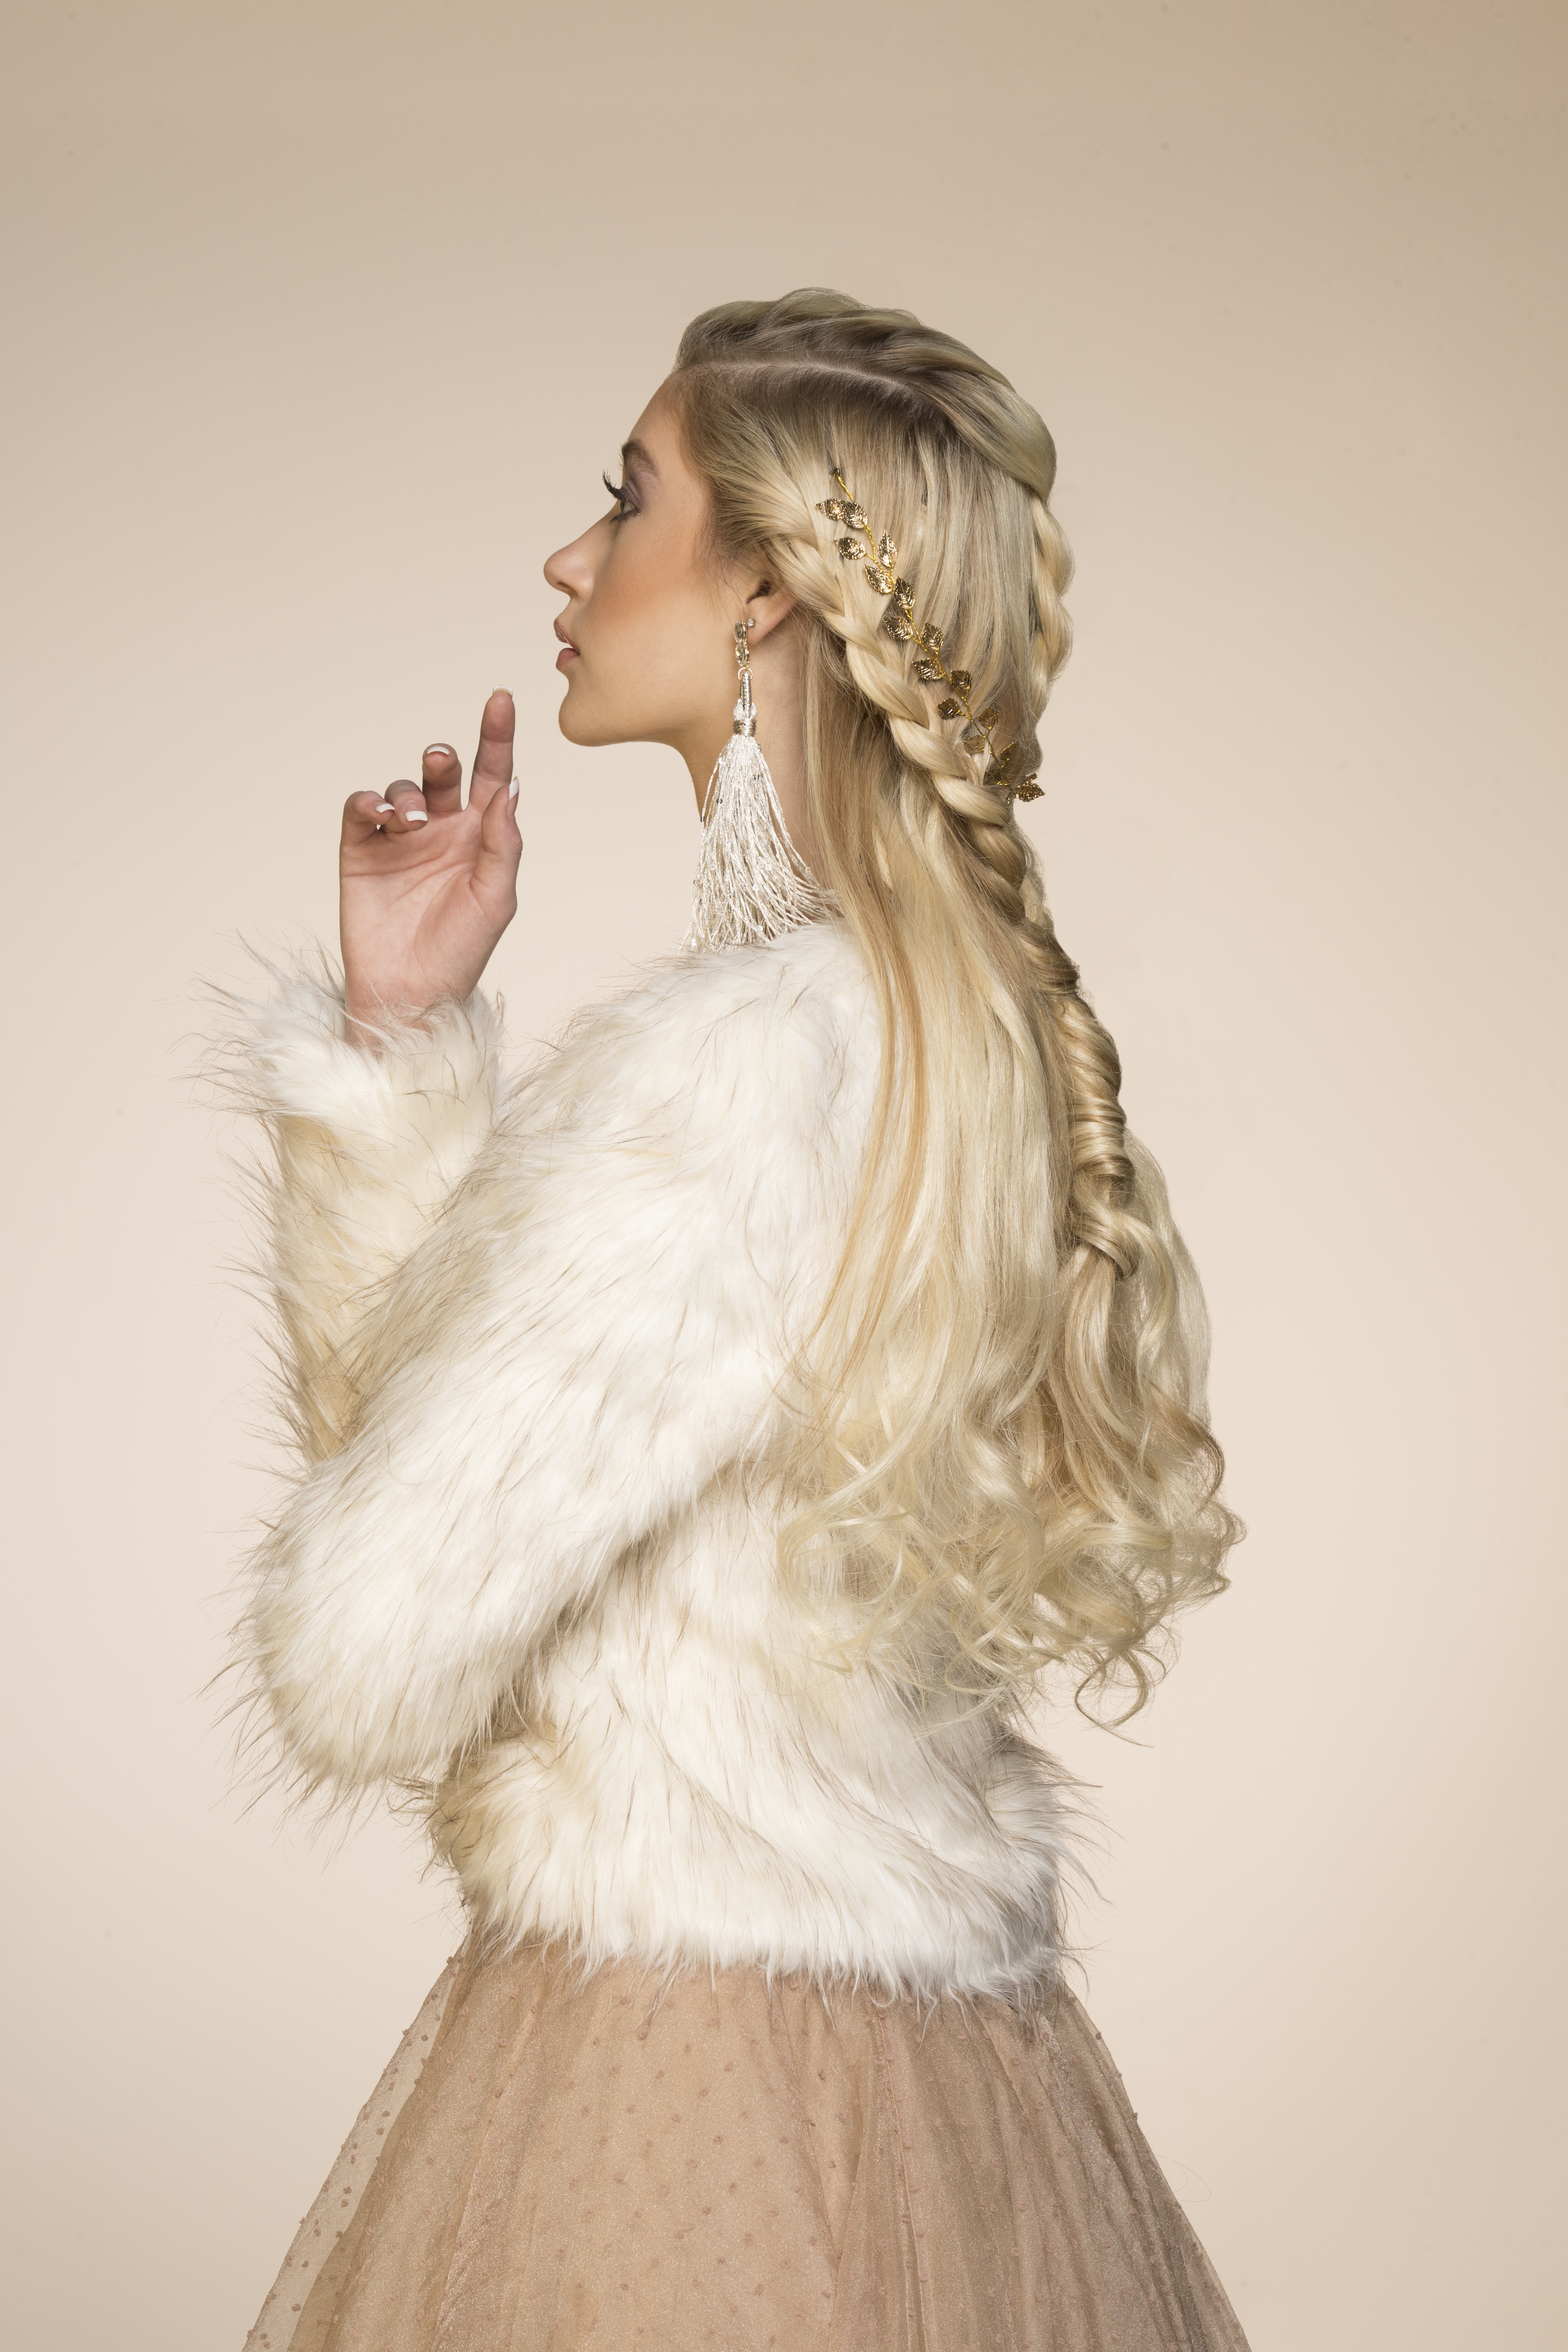 VIDEO HOW-TO: The Season's Most Romantic Braid